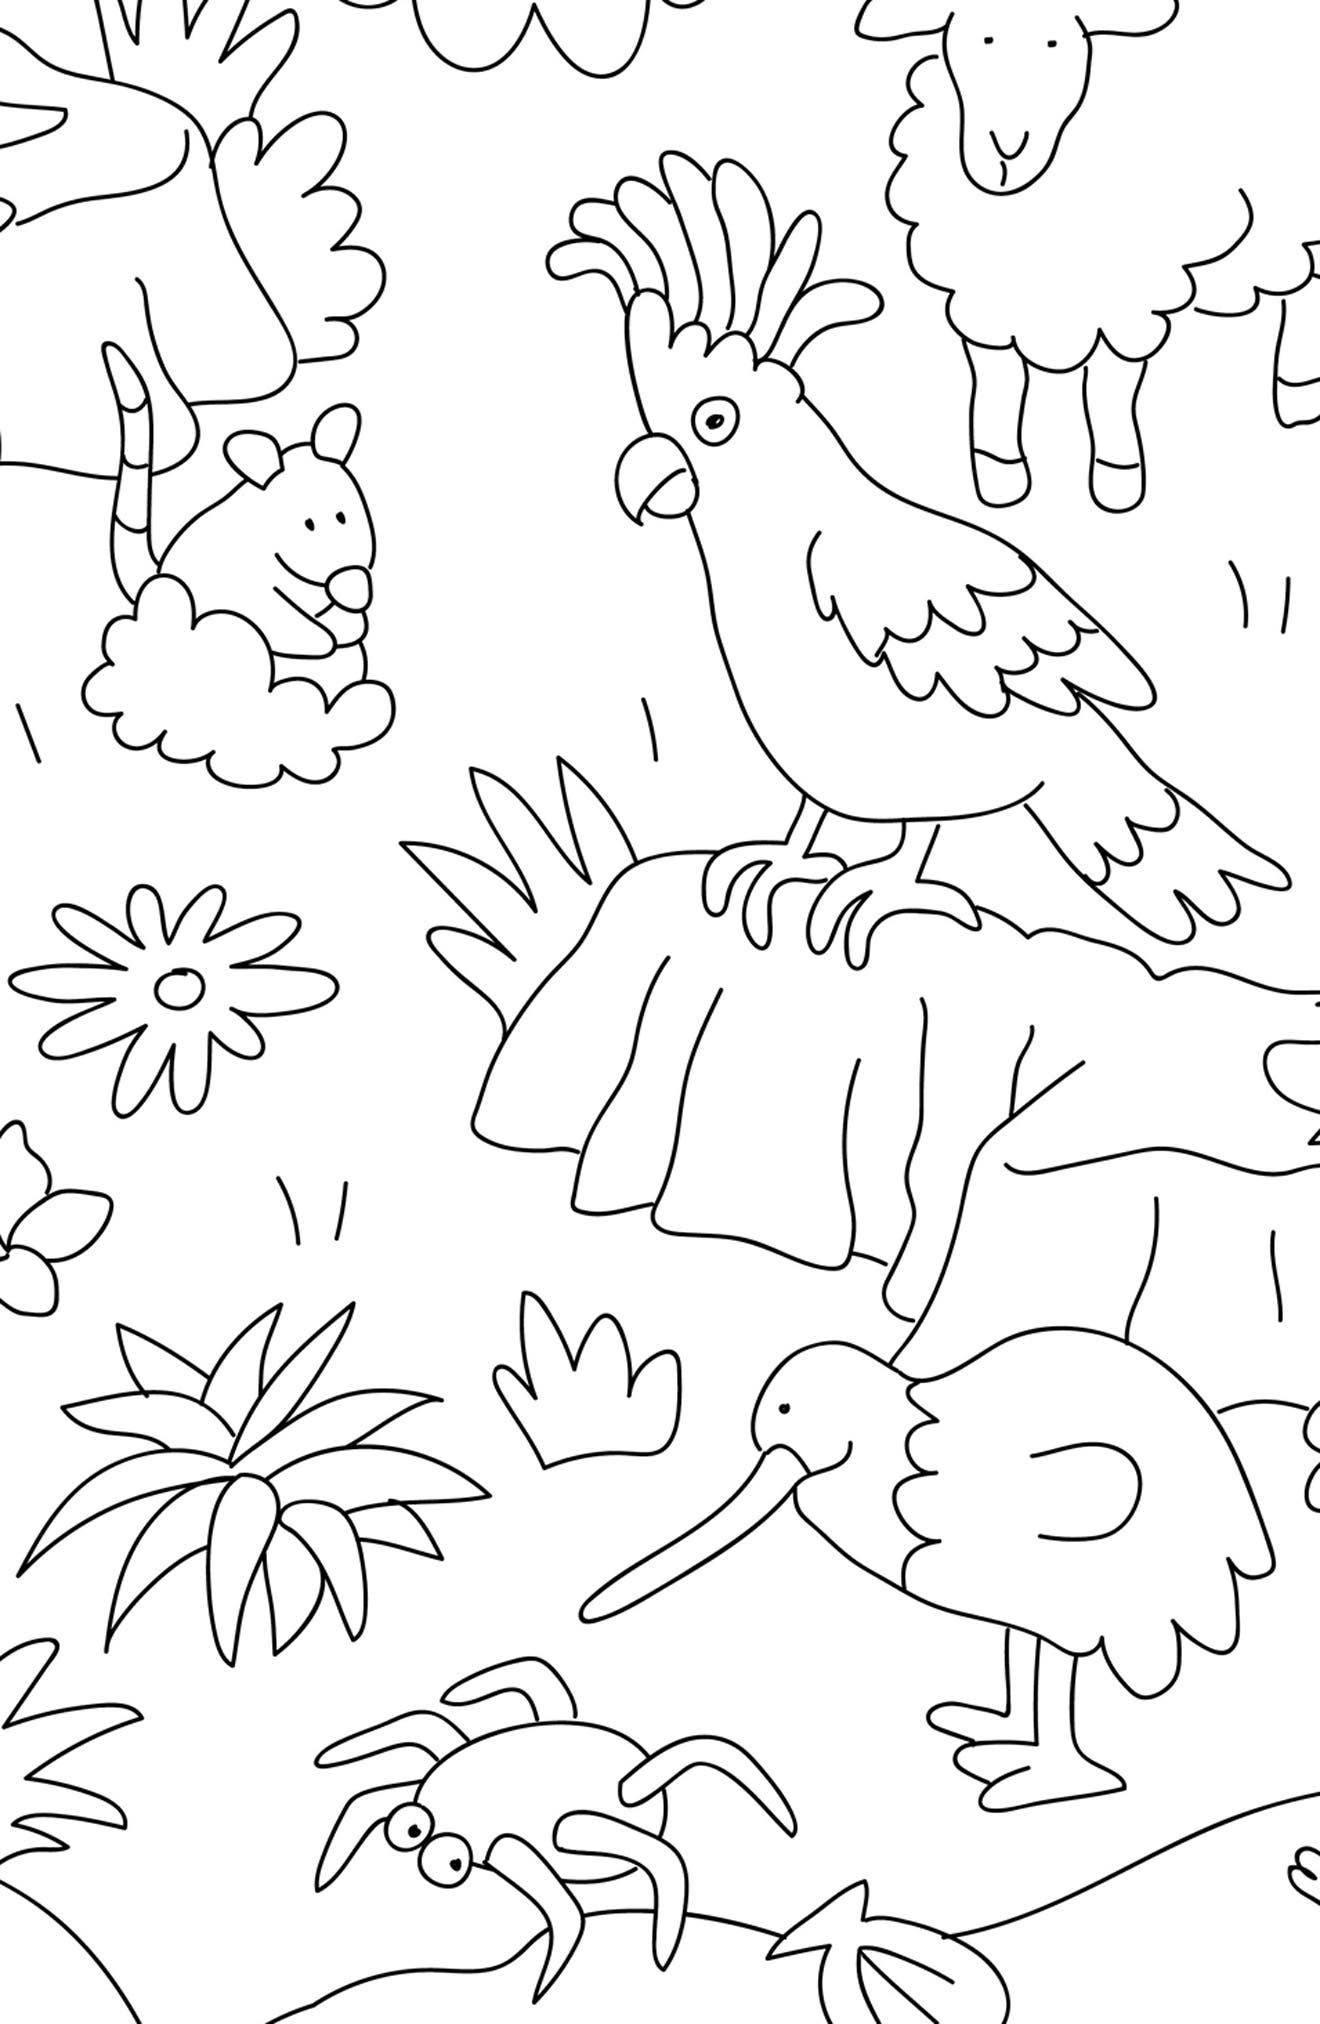 Set of 24 Animals Coloring Placemats,                             Alternate thumbnail 3, color,                             Animal